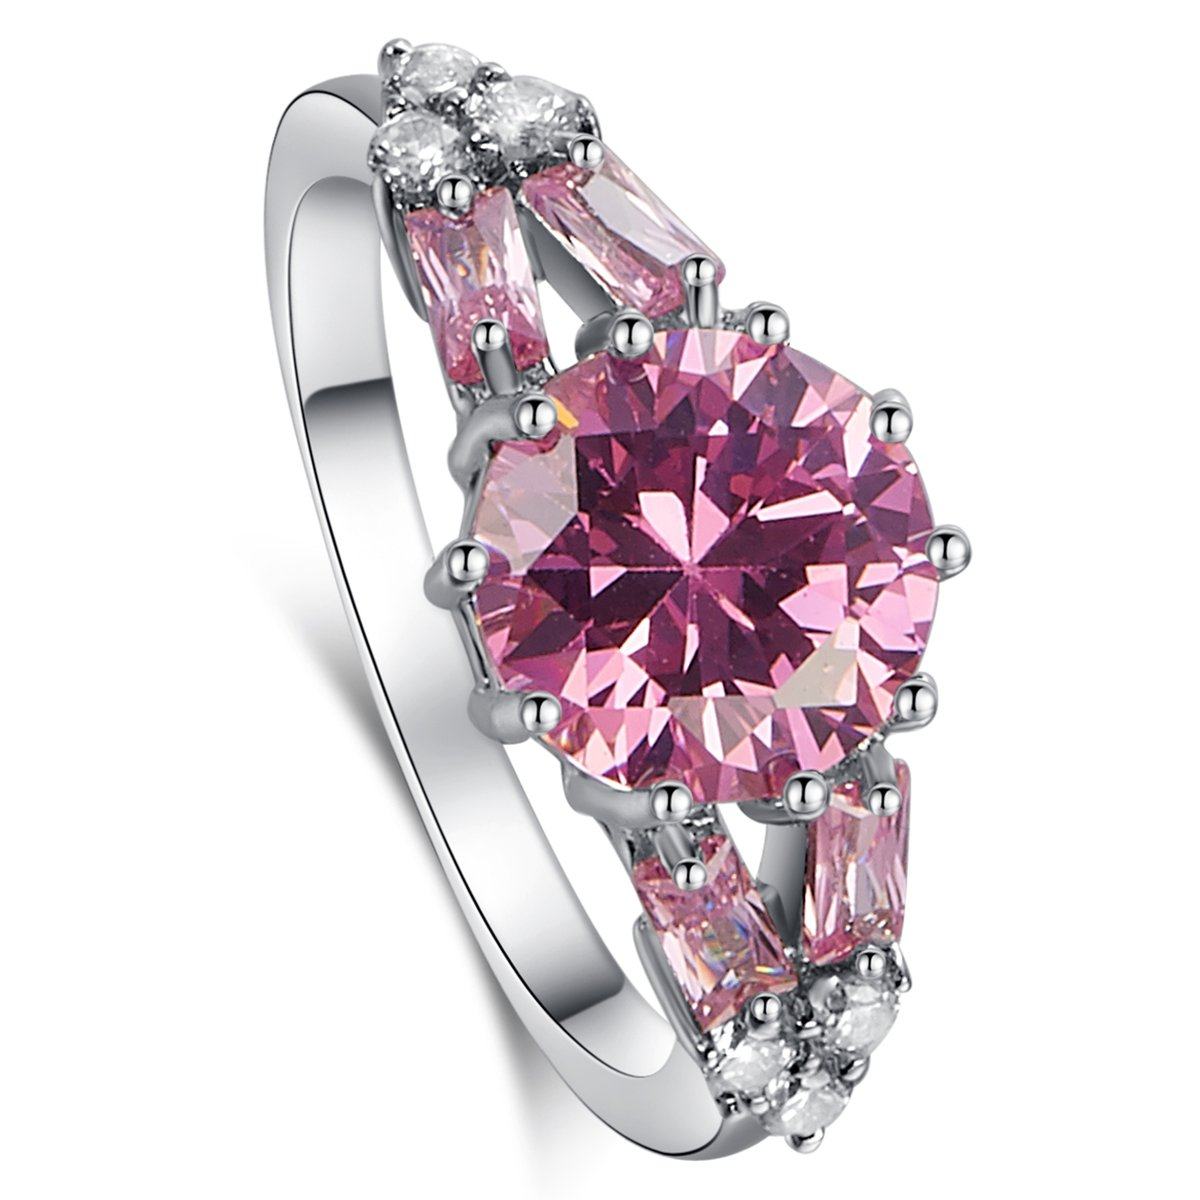 Psiroy 925 Sterling Silver Created Morganite Filled Split Shank Band Cocktail Ring